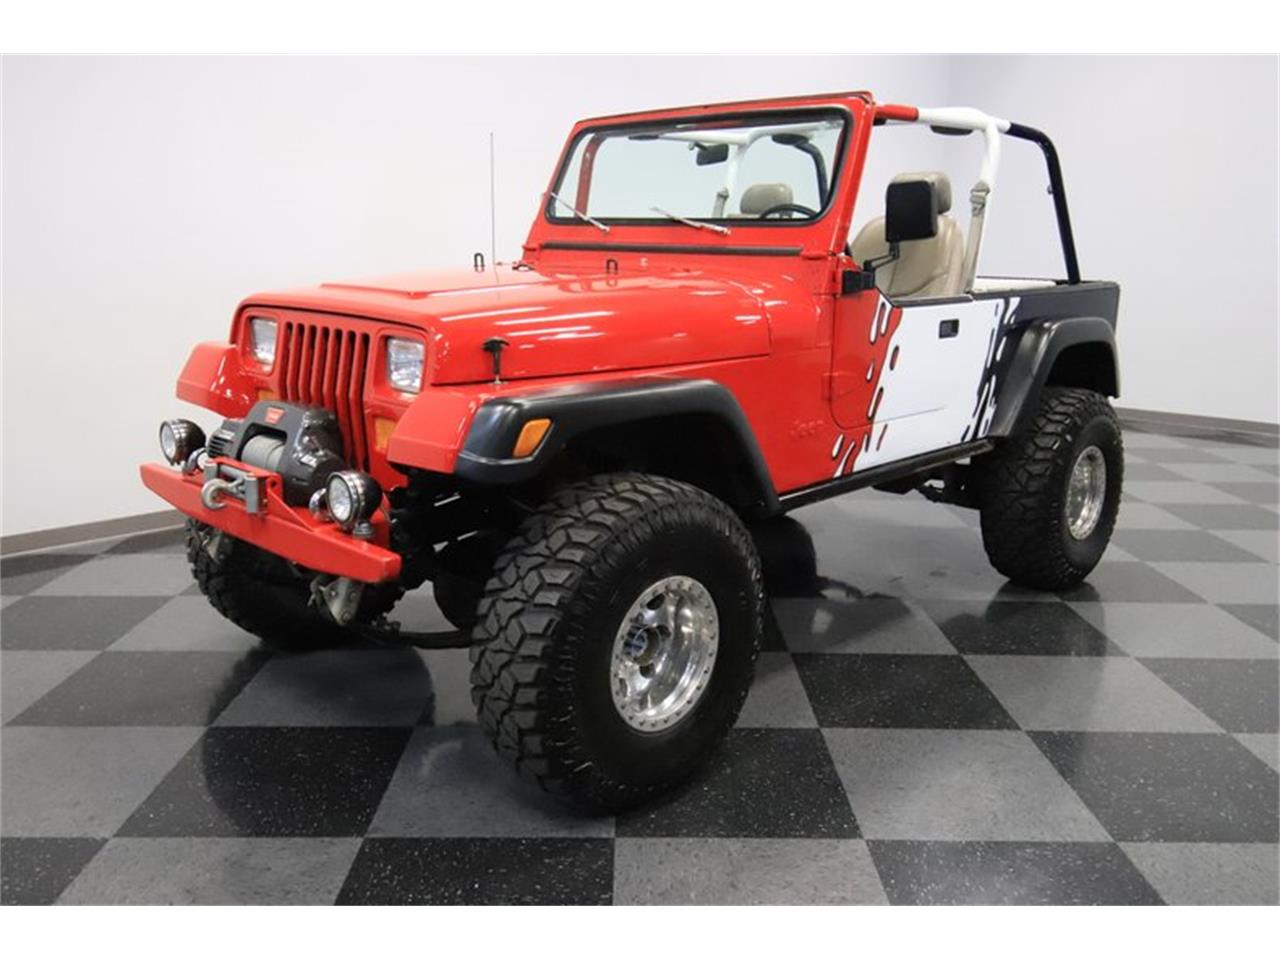 1983 Jeep CJ8 Scrambler for sale in Mesa, AZ – photo 4